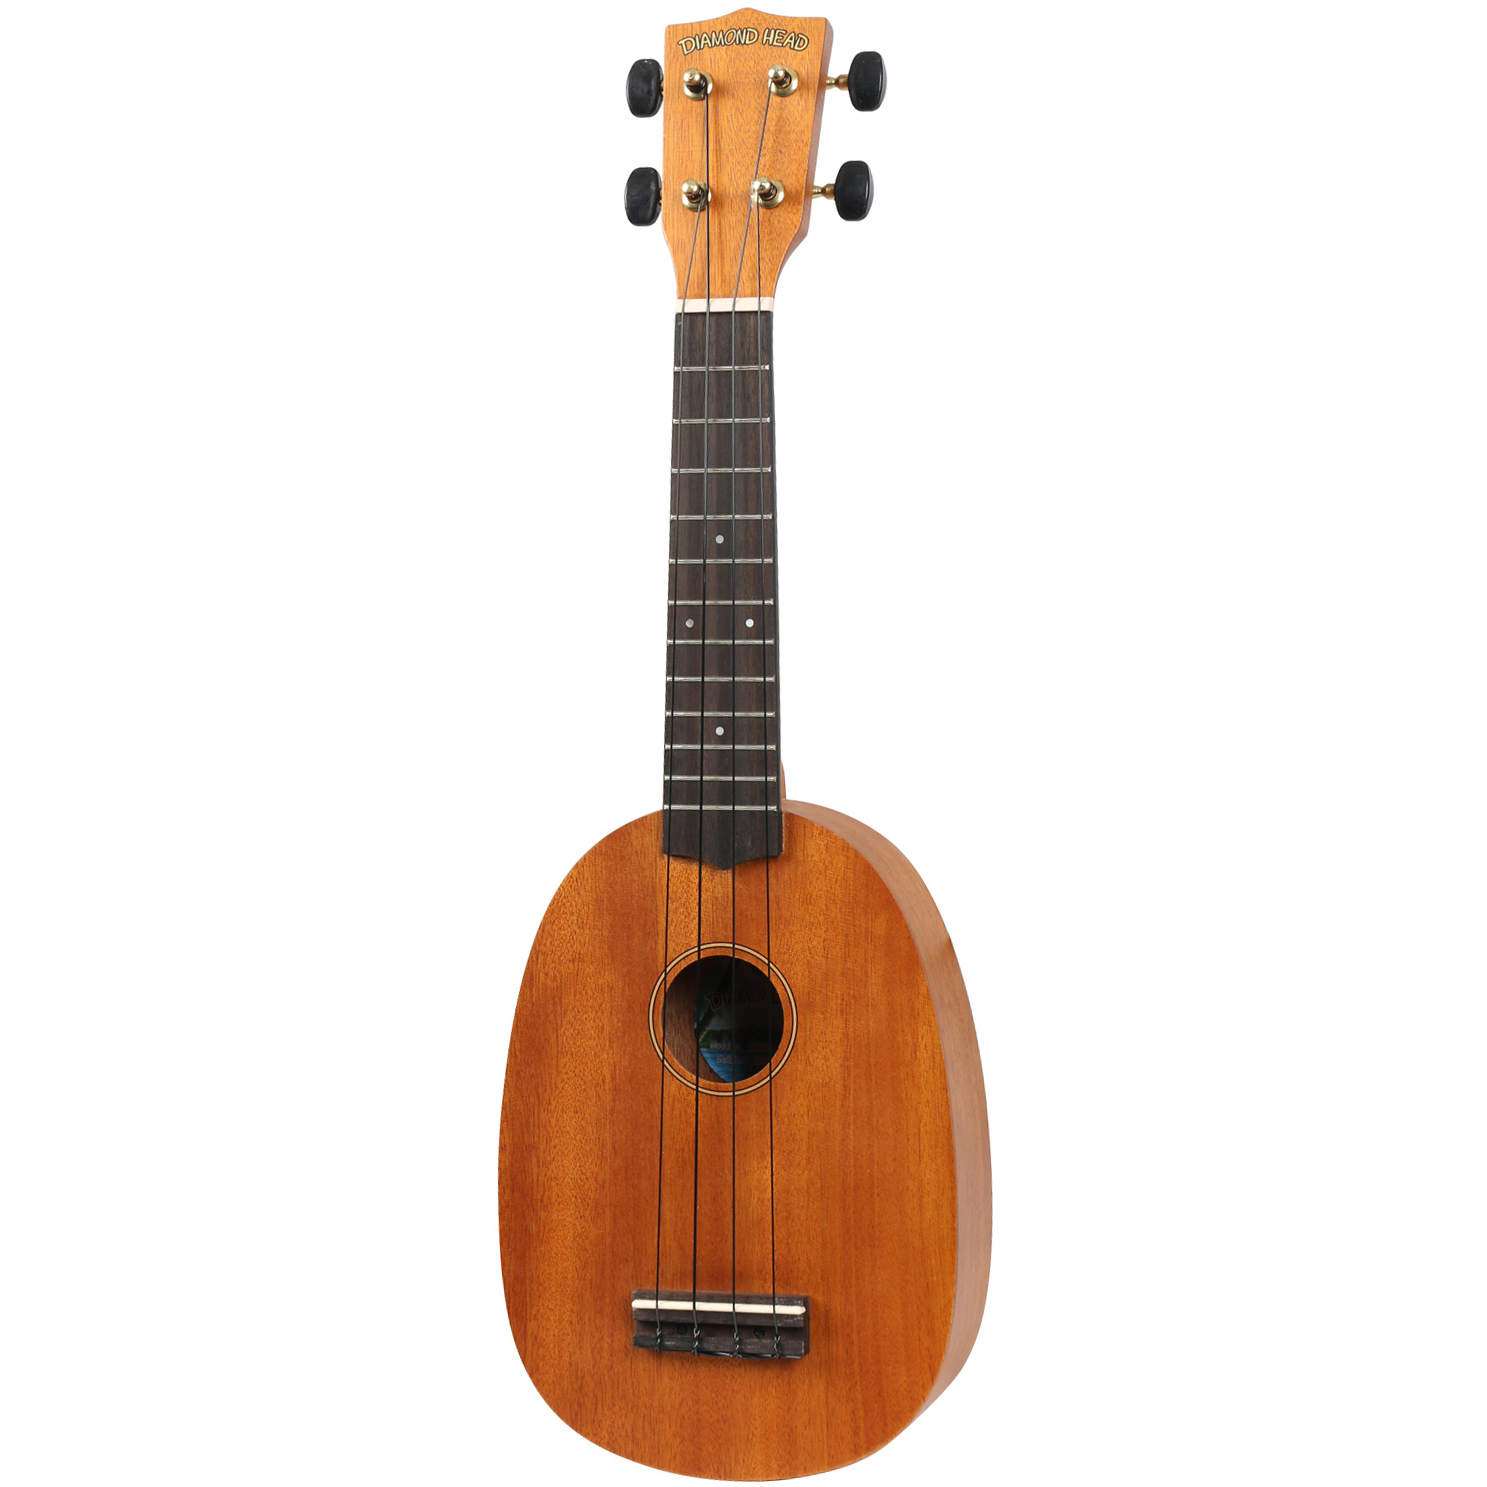 (B Ware) Diamond Head DU 200P Deluxe Natural Pineapple Sopran Ukulele